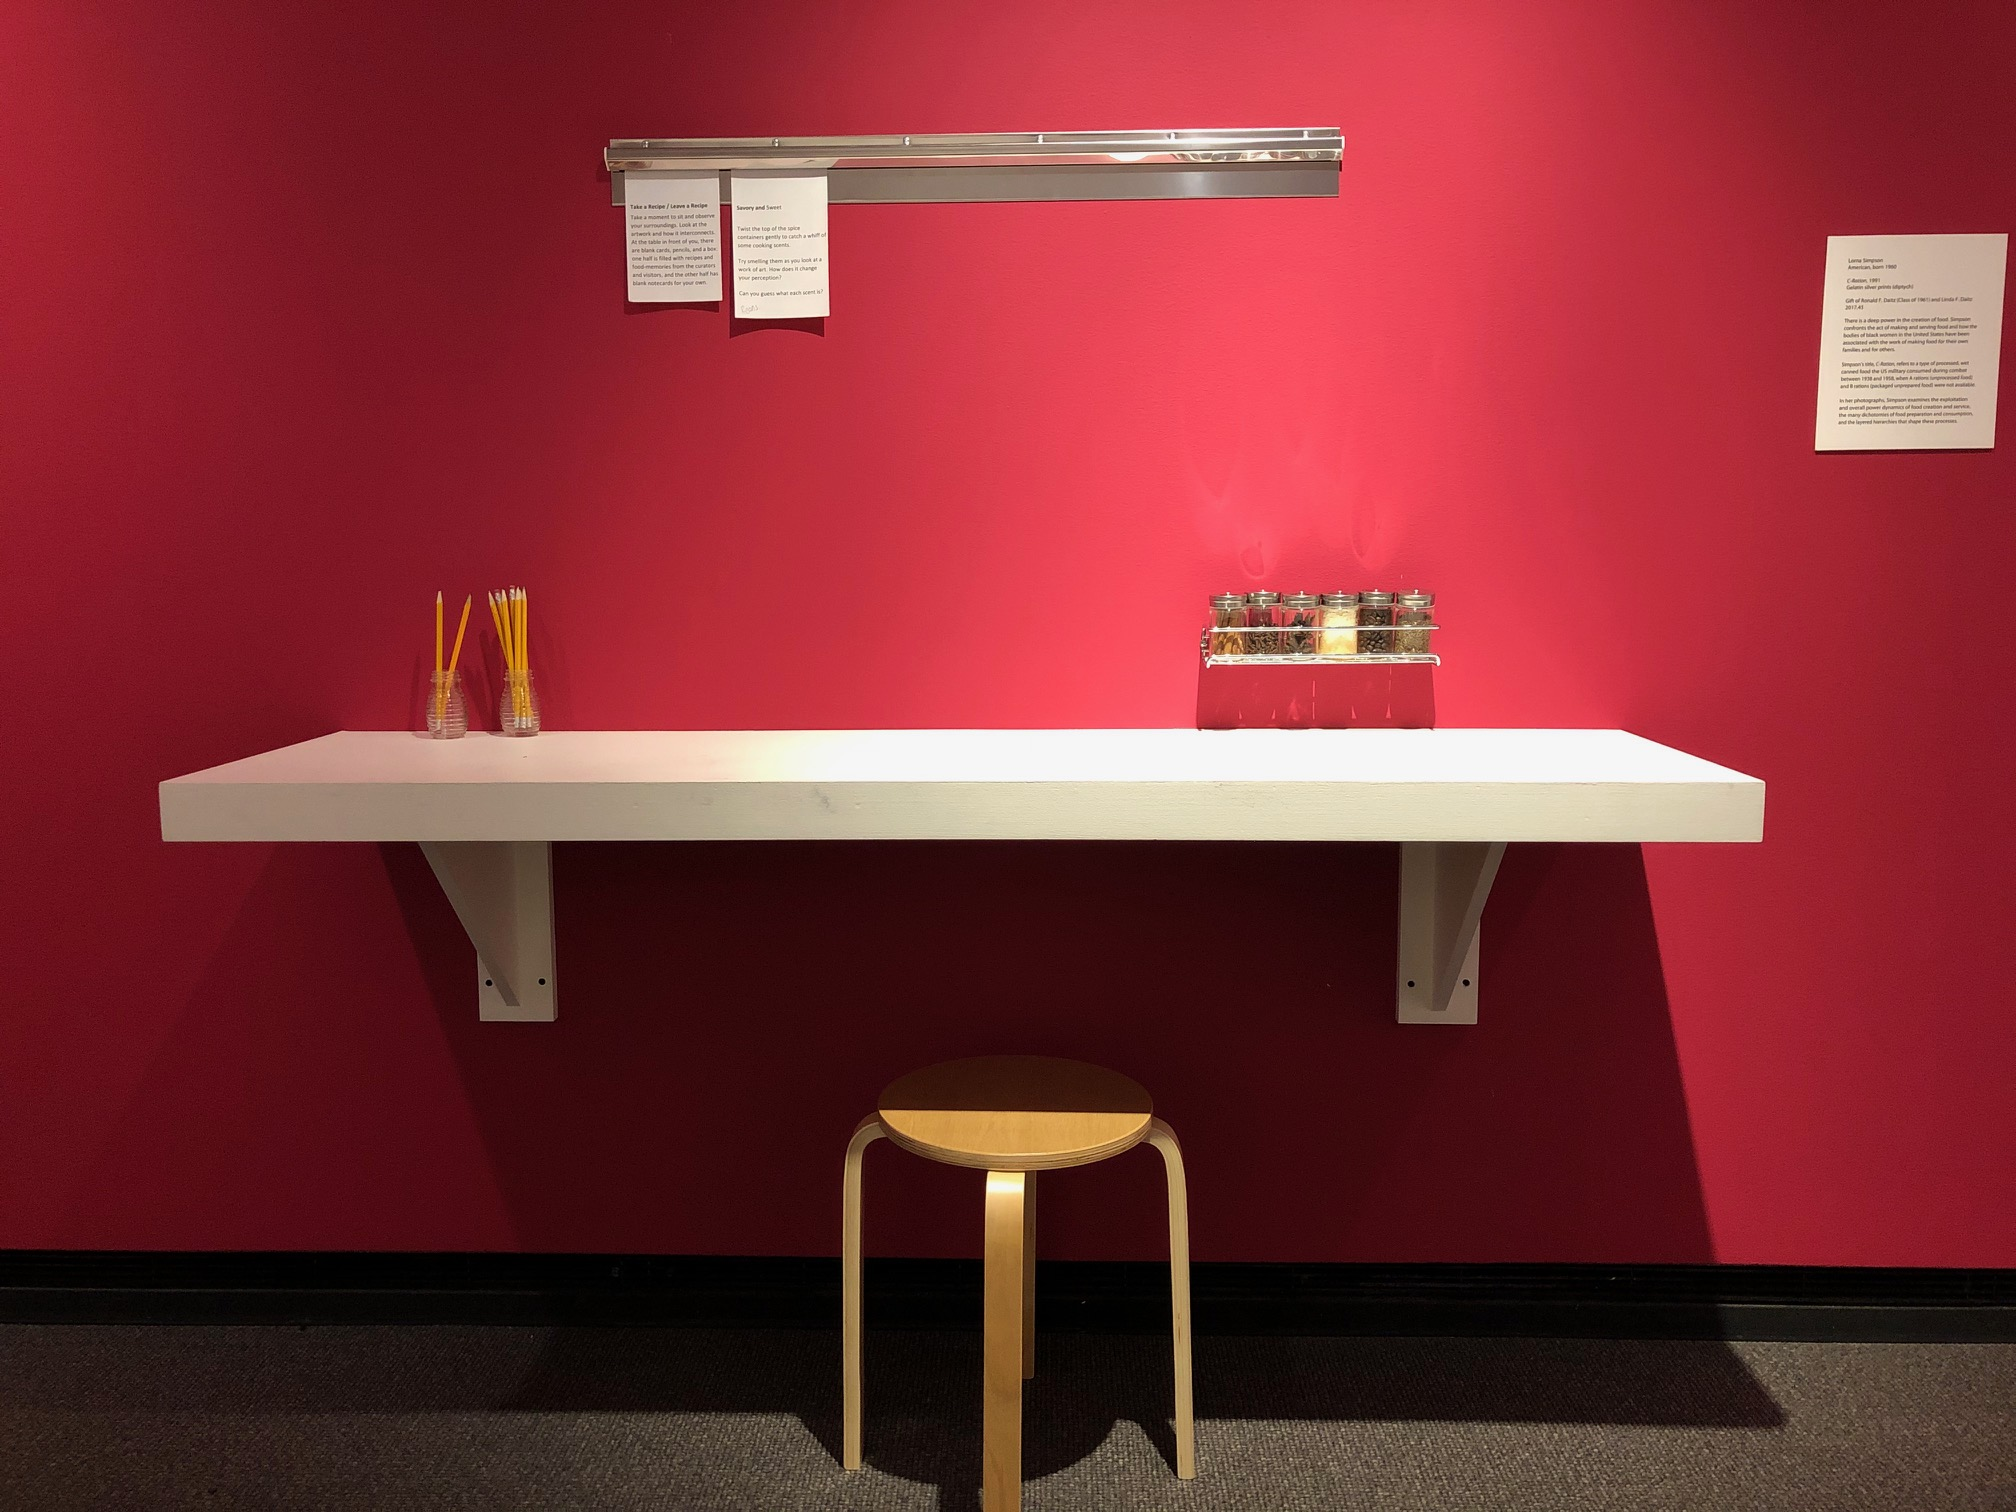 Photograph of a counter and stool